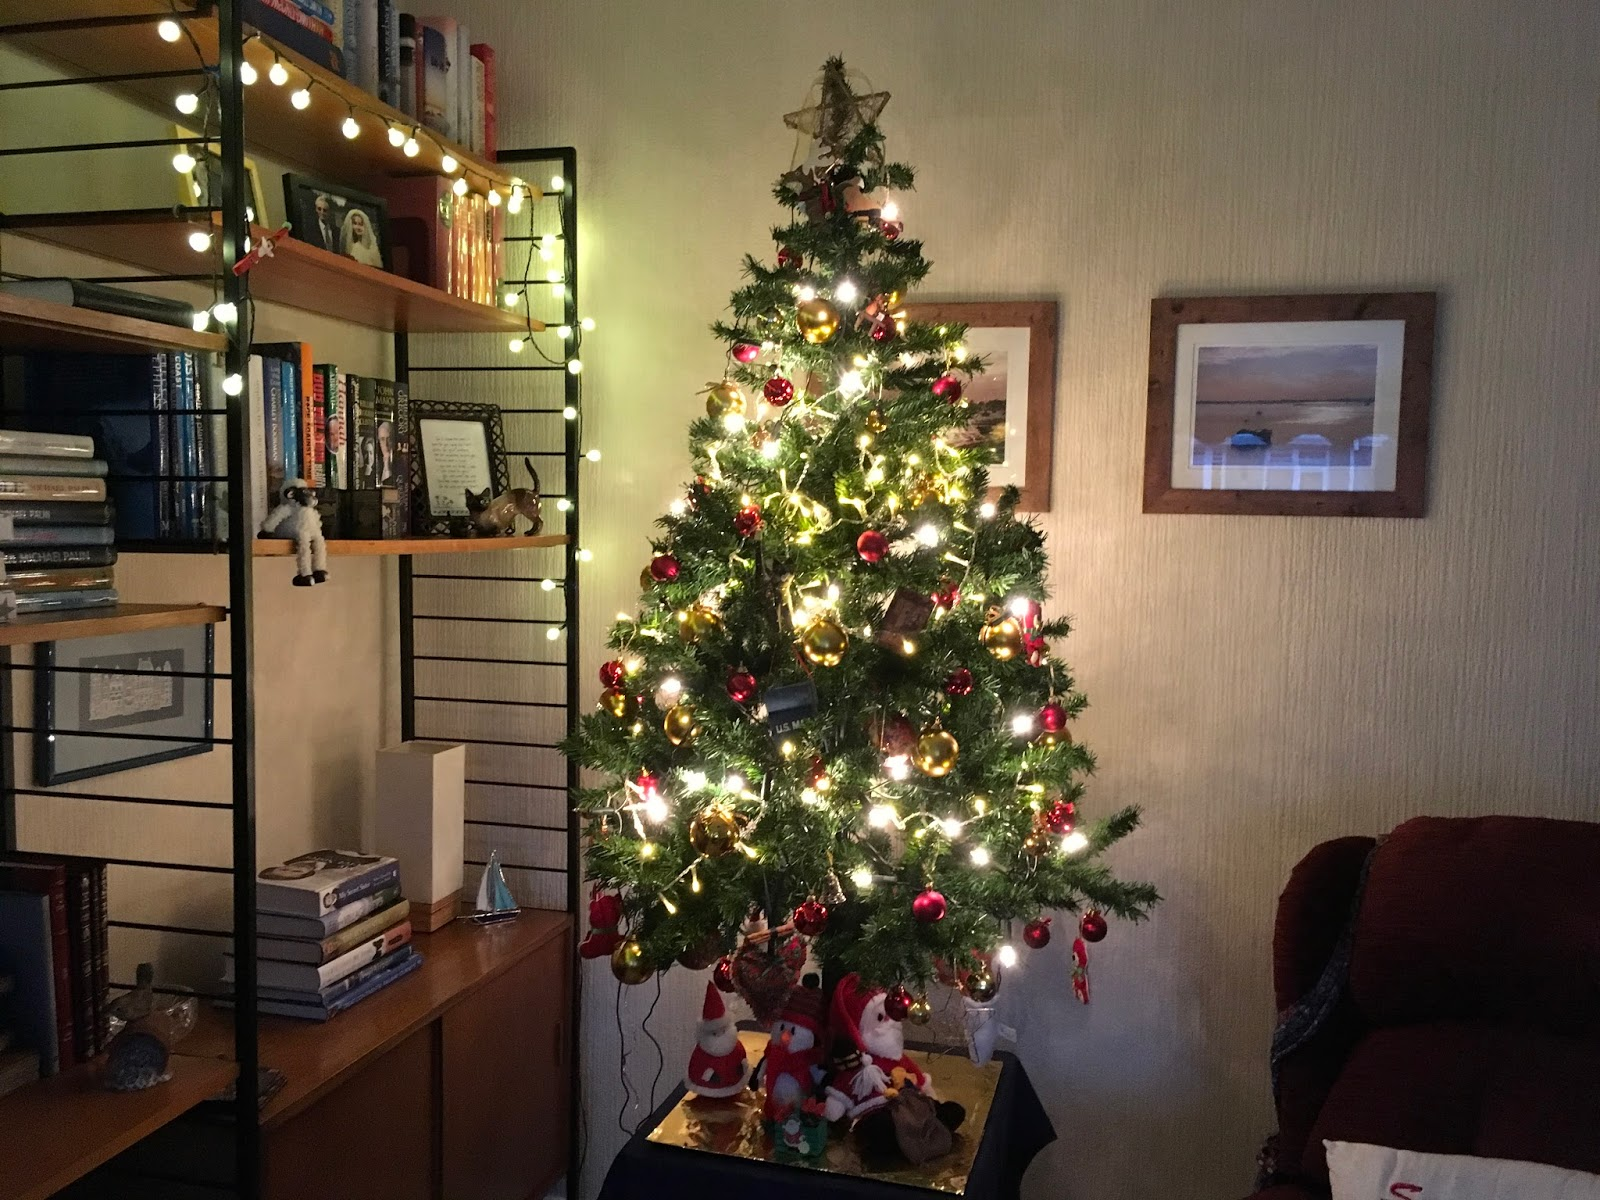 Ramblings from an English Garden: I Think it is Christmas! At home ...